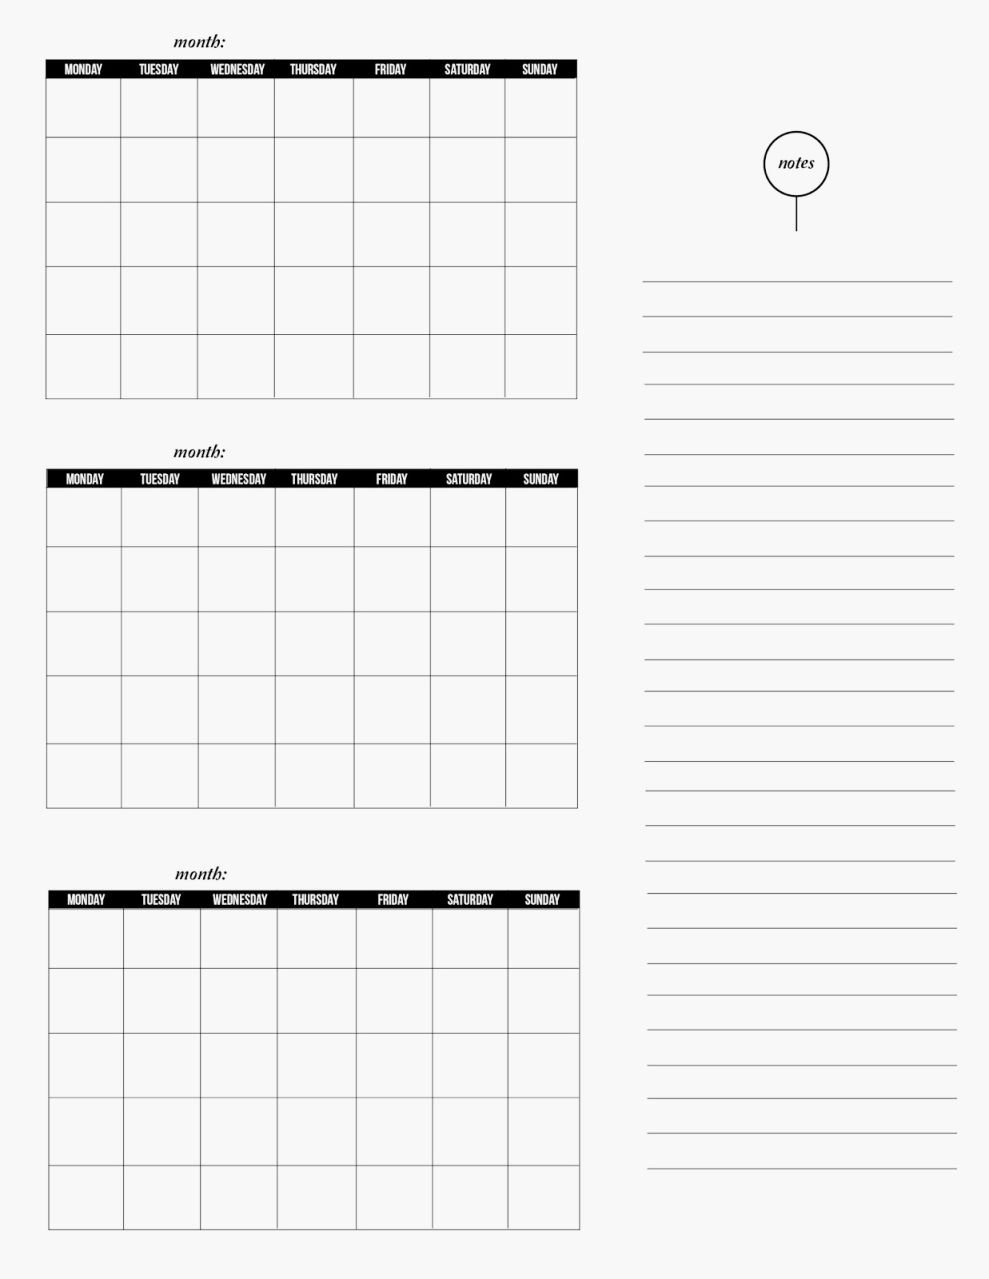 Depo Provera Perpetual Printable Calendar 2018 – Template 3 Month Injection Schedule Depo Healthpac